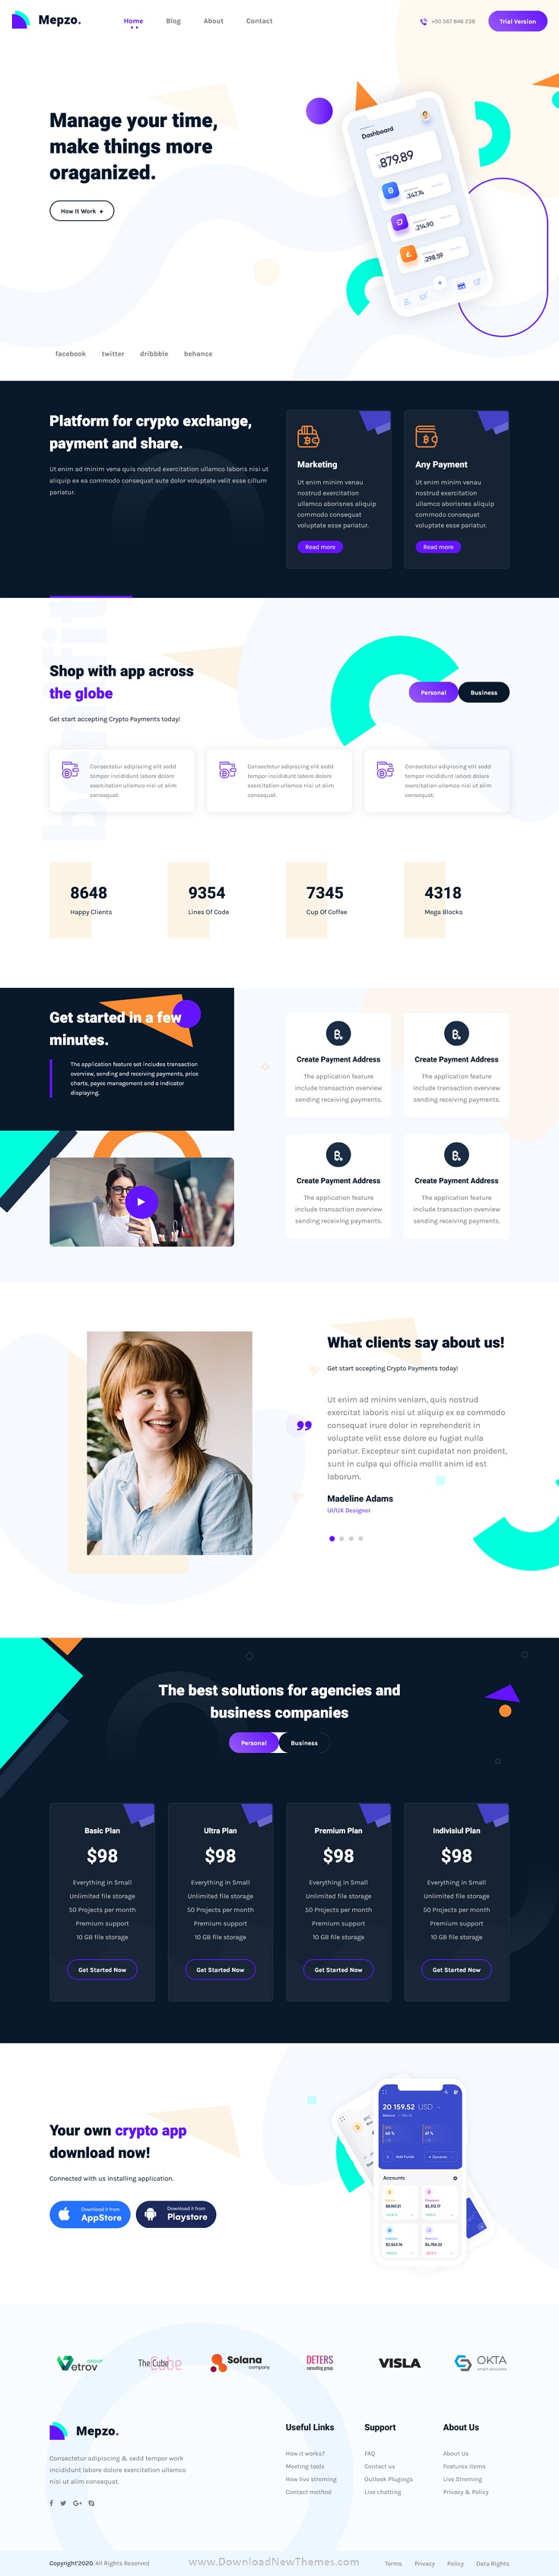 Mobile App Responsive Landing Page Template